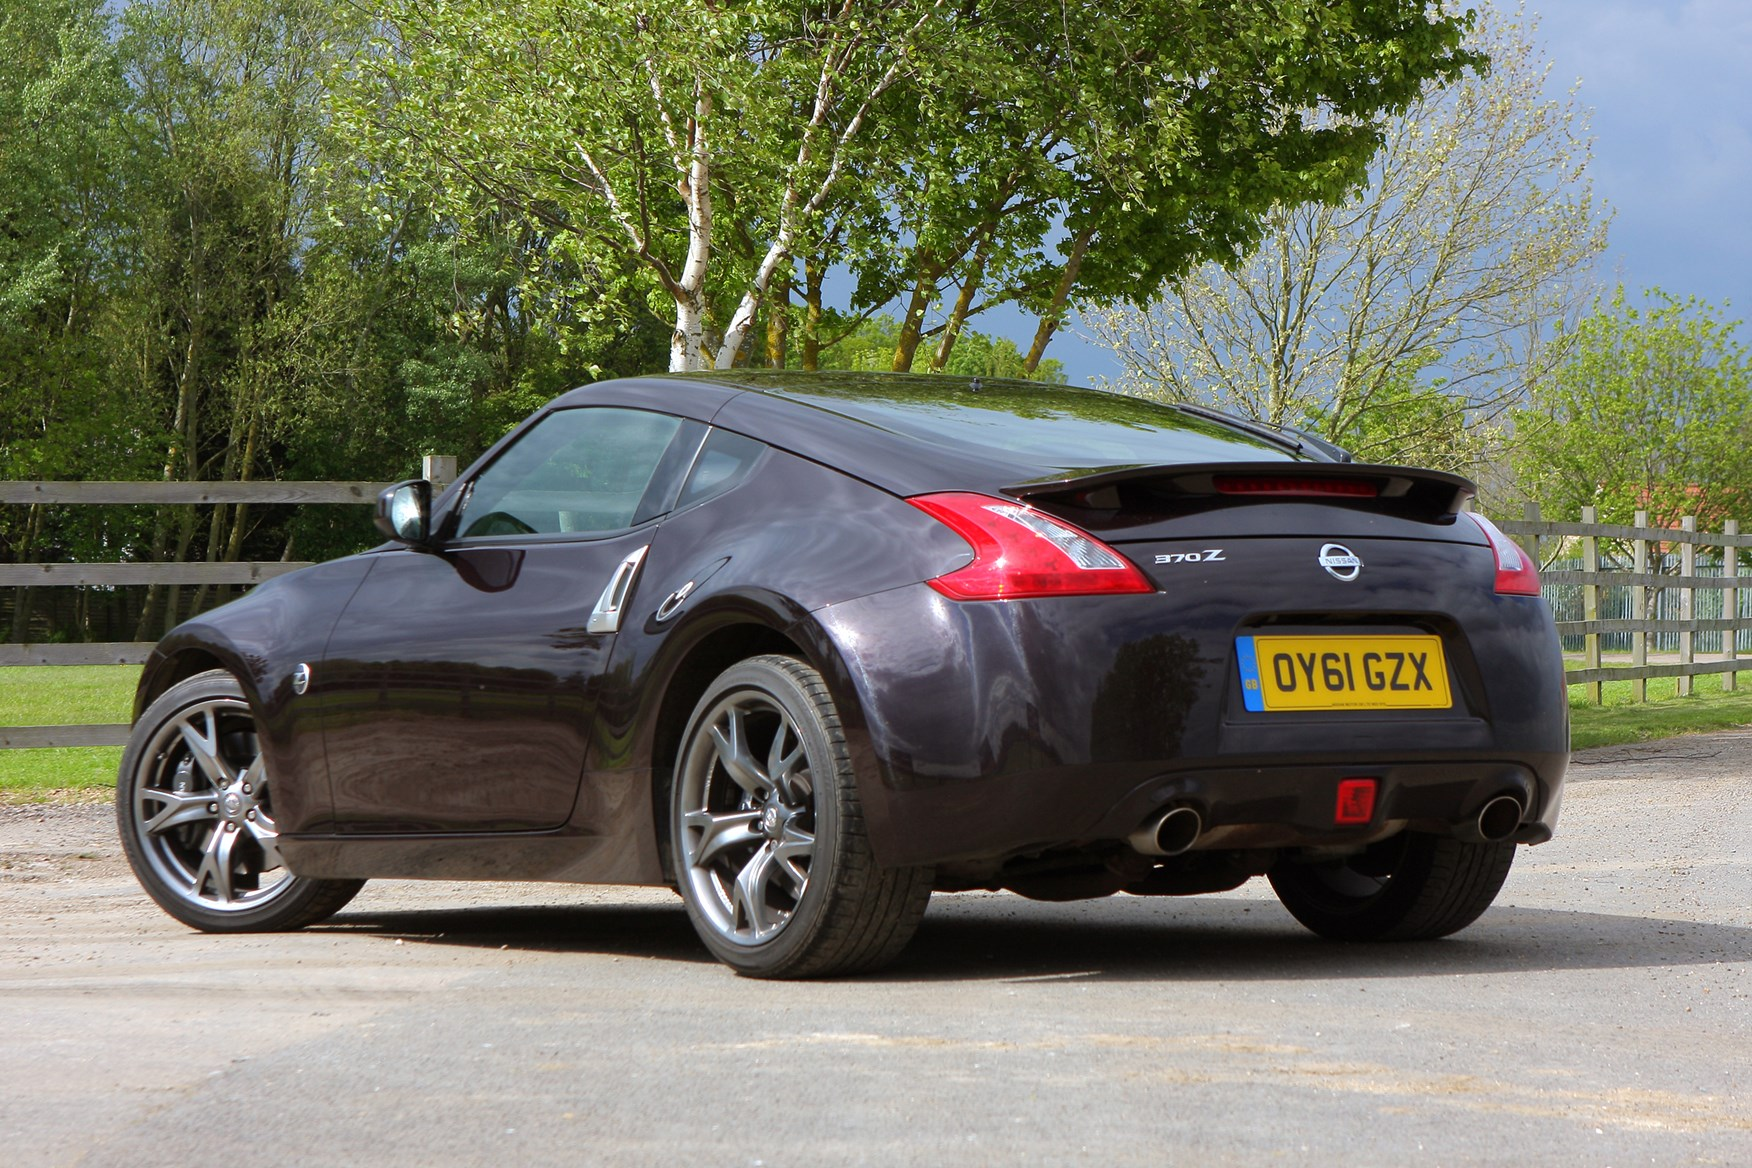 nissan 370z coupe review 2009 parkers. Black Bedroom Furniture Sets. Home Design Ideas